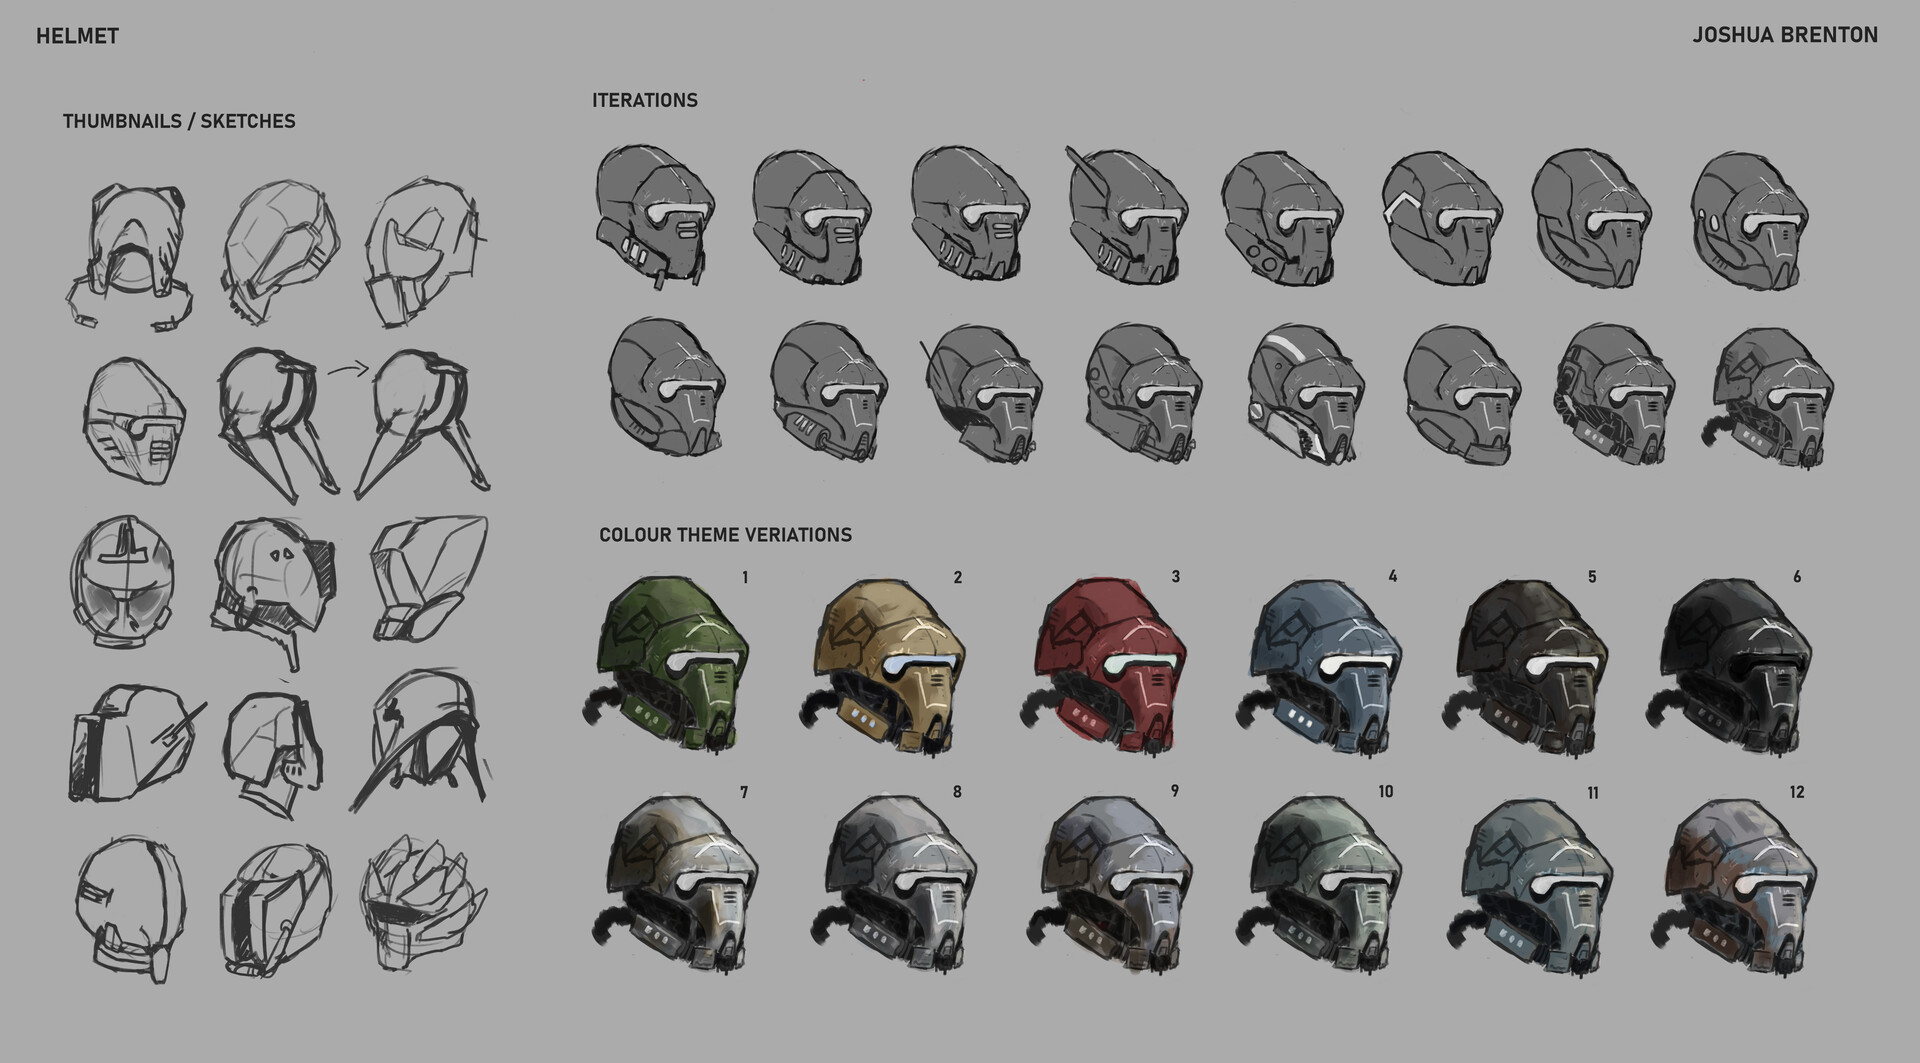 Helmet design first, with thumbnails, then iterations and colour scheme variants